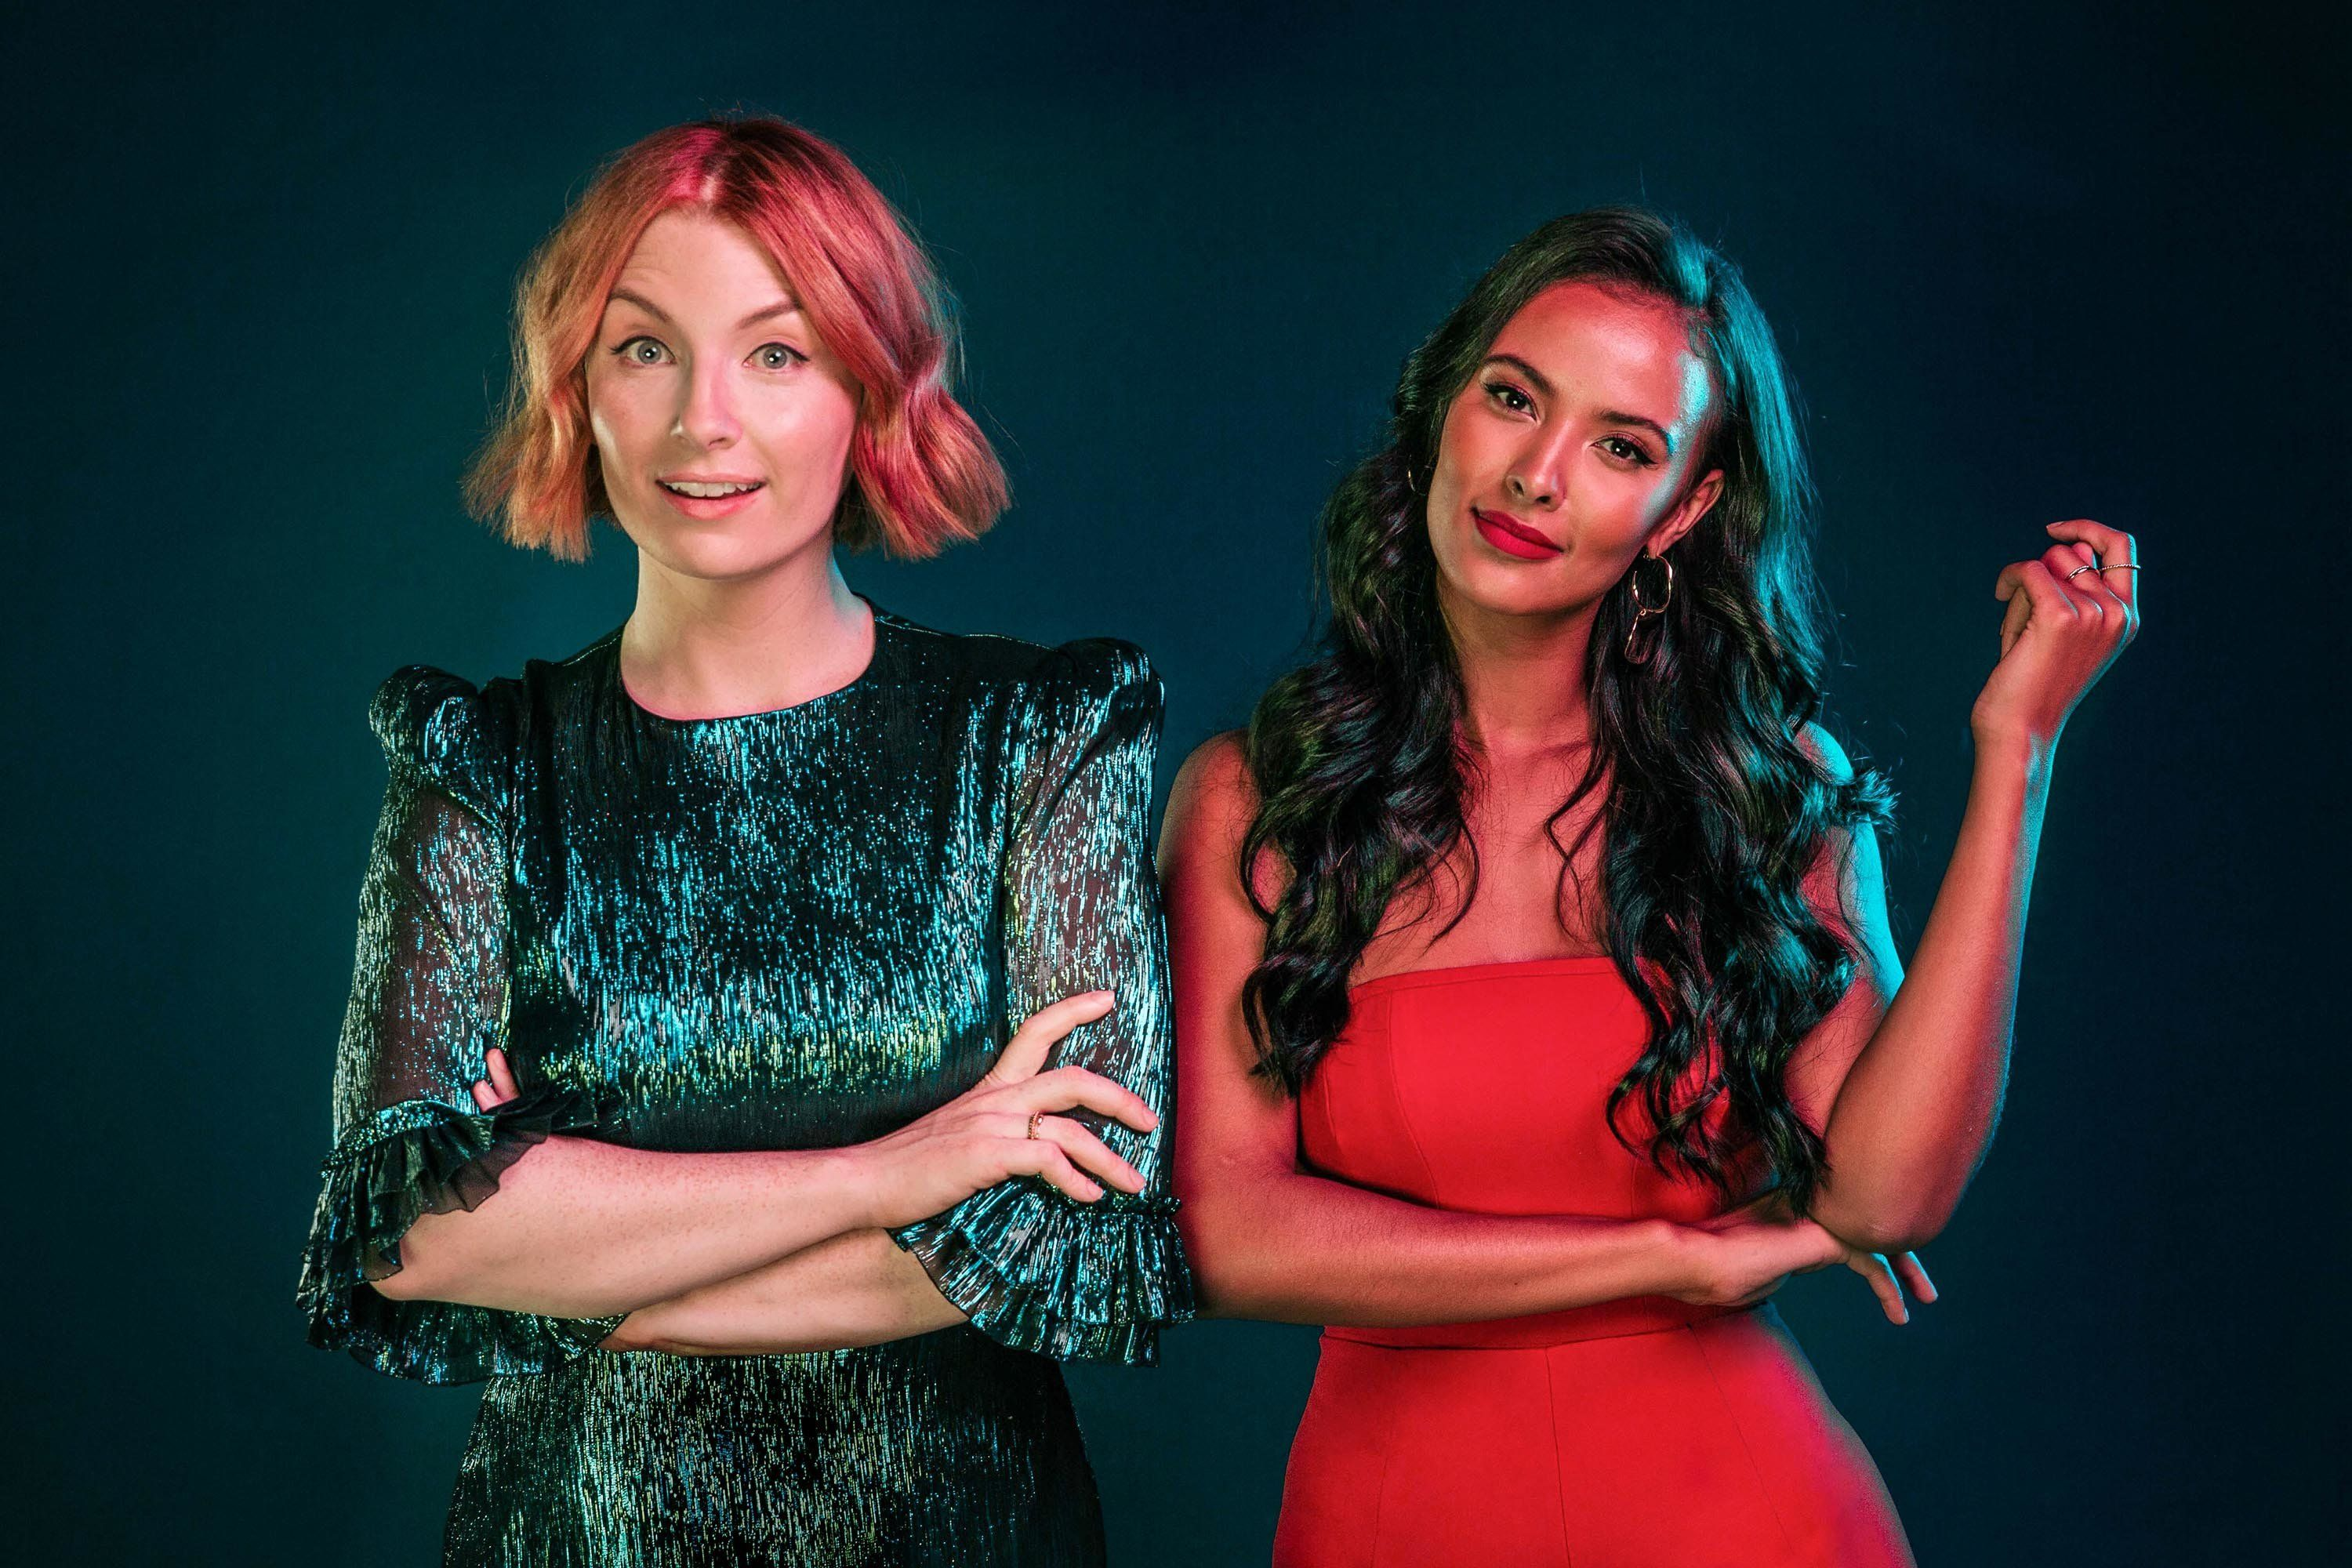 UNDECIDED: Viewers Have Very Mixed Feelings About Channel 4′s New Reality Show 'The